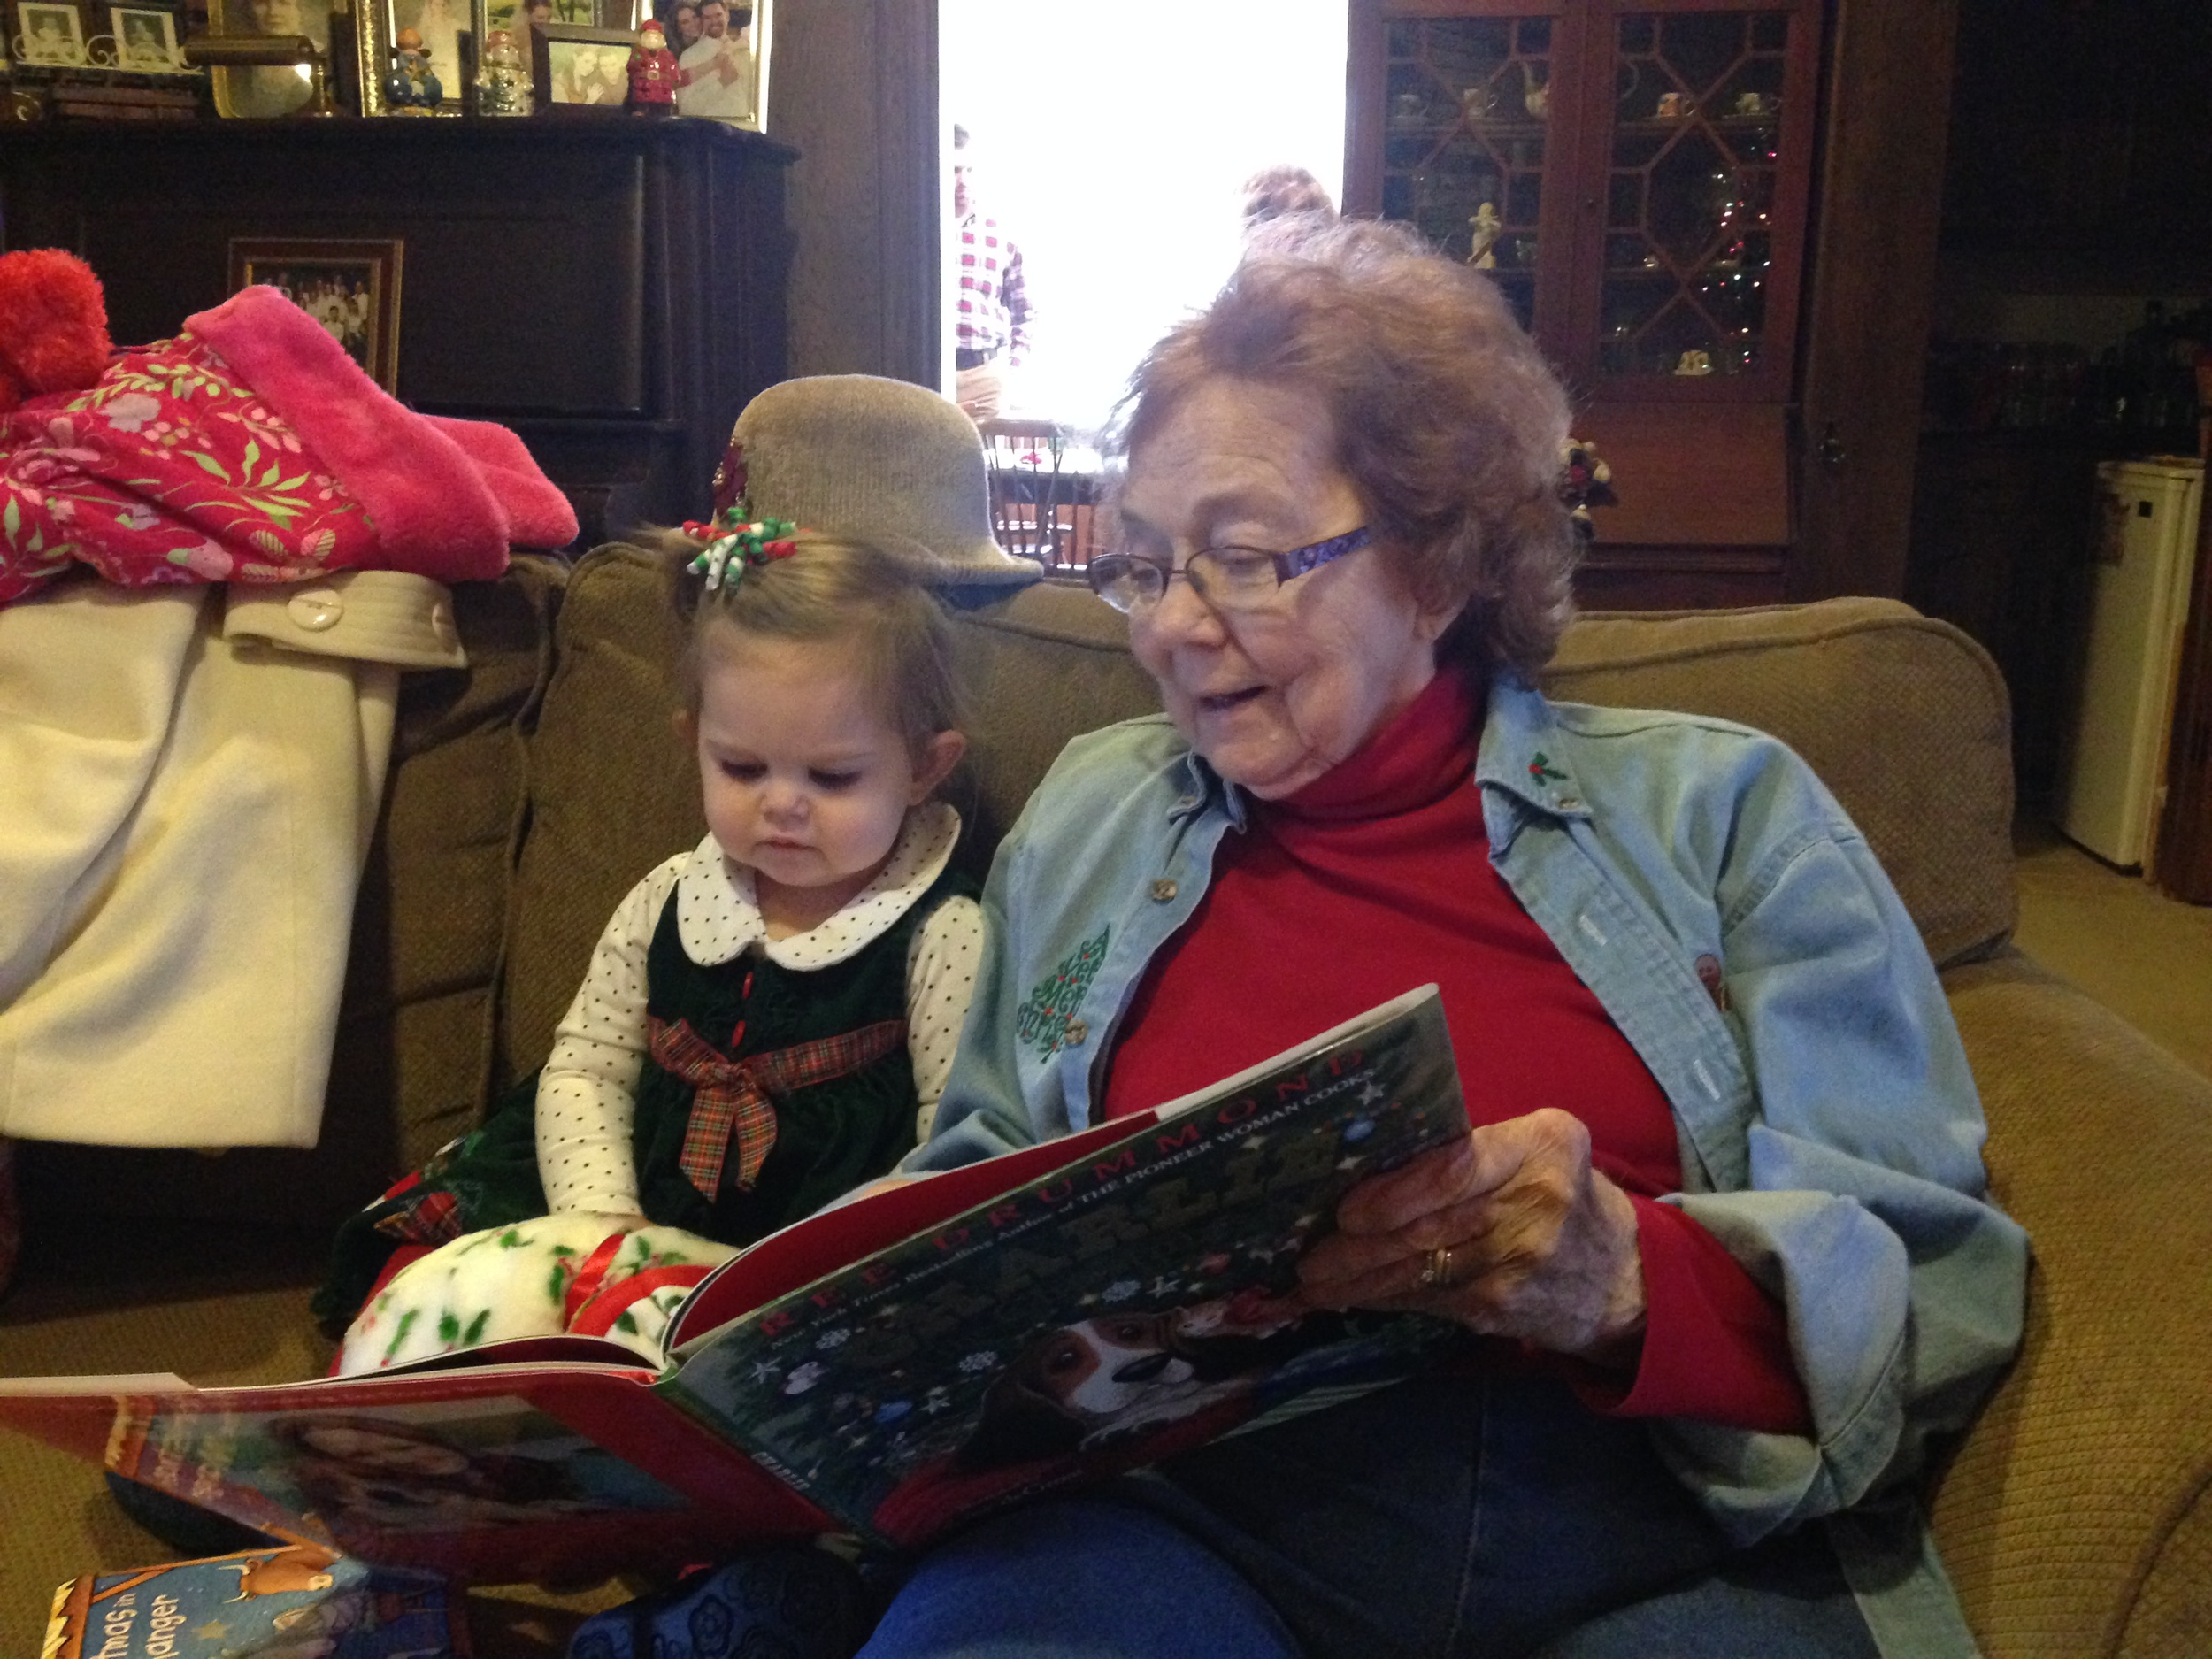 Christmas 2013, Grandma (or GG) reads to her great granddaughter, Maddie, about Charlie's Christmas. Love this picture for so many reasons!